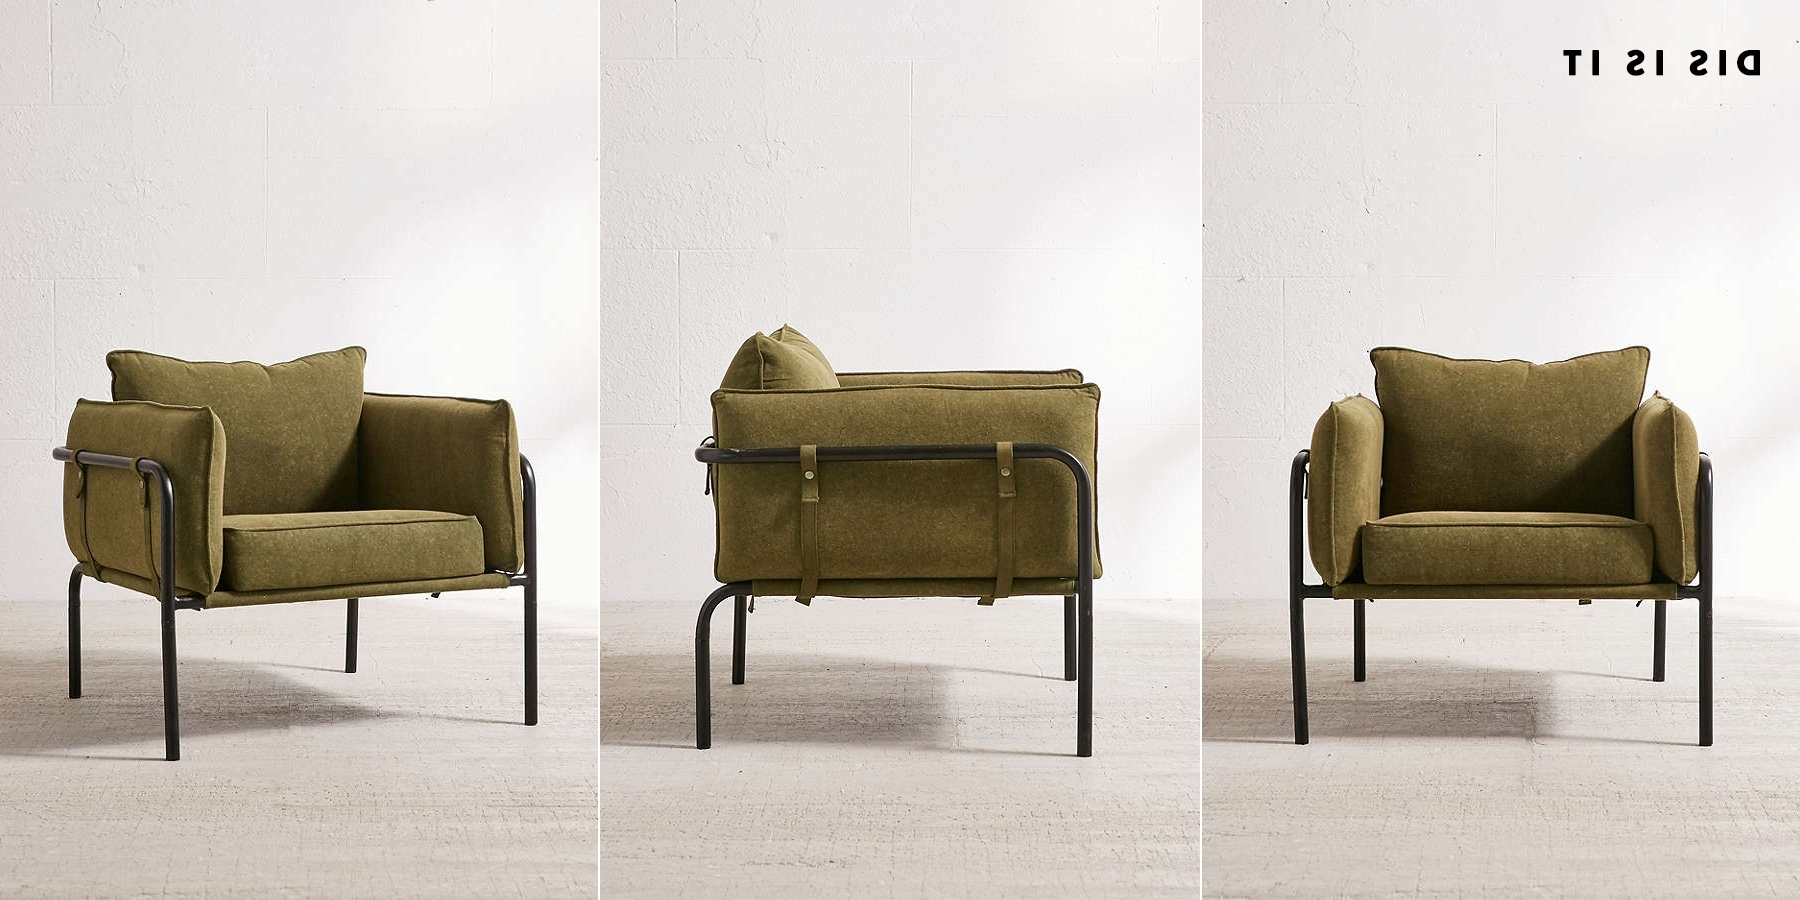 Army Green Chairs For The Fireplace Intended For Latest Green Sofa Chairs (View 11 of 15)